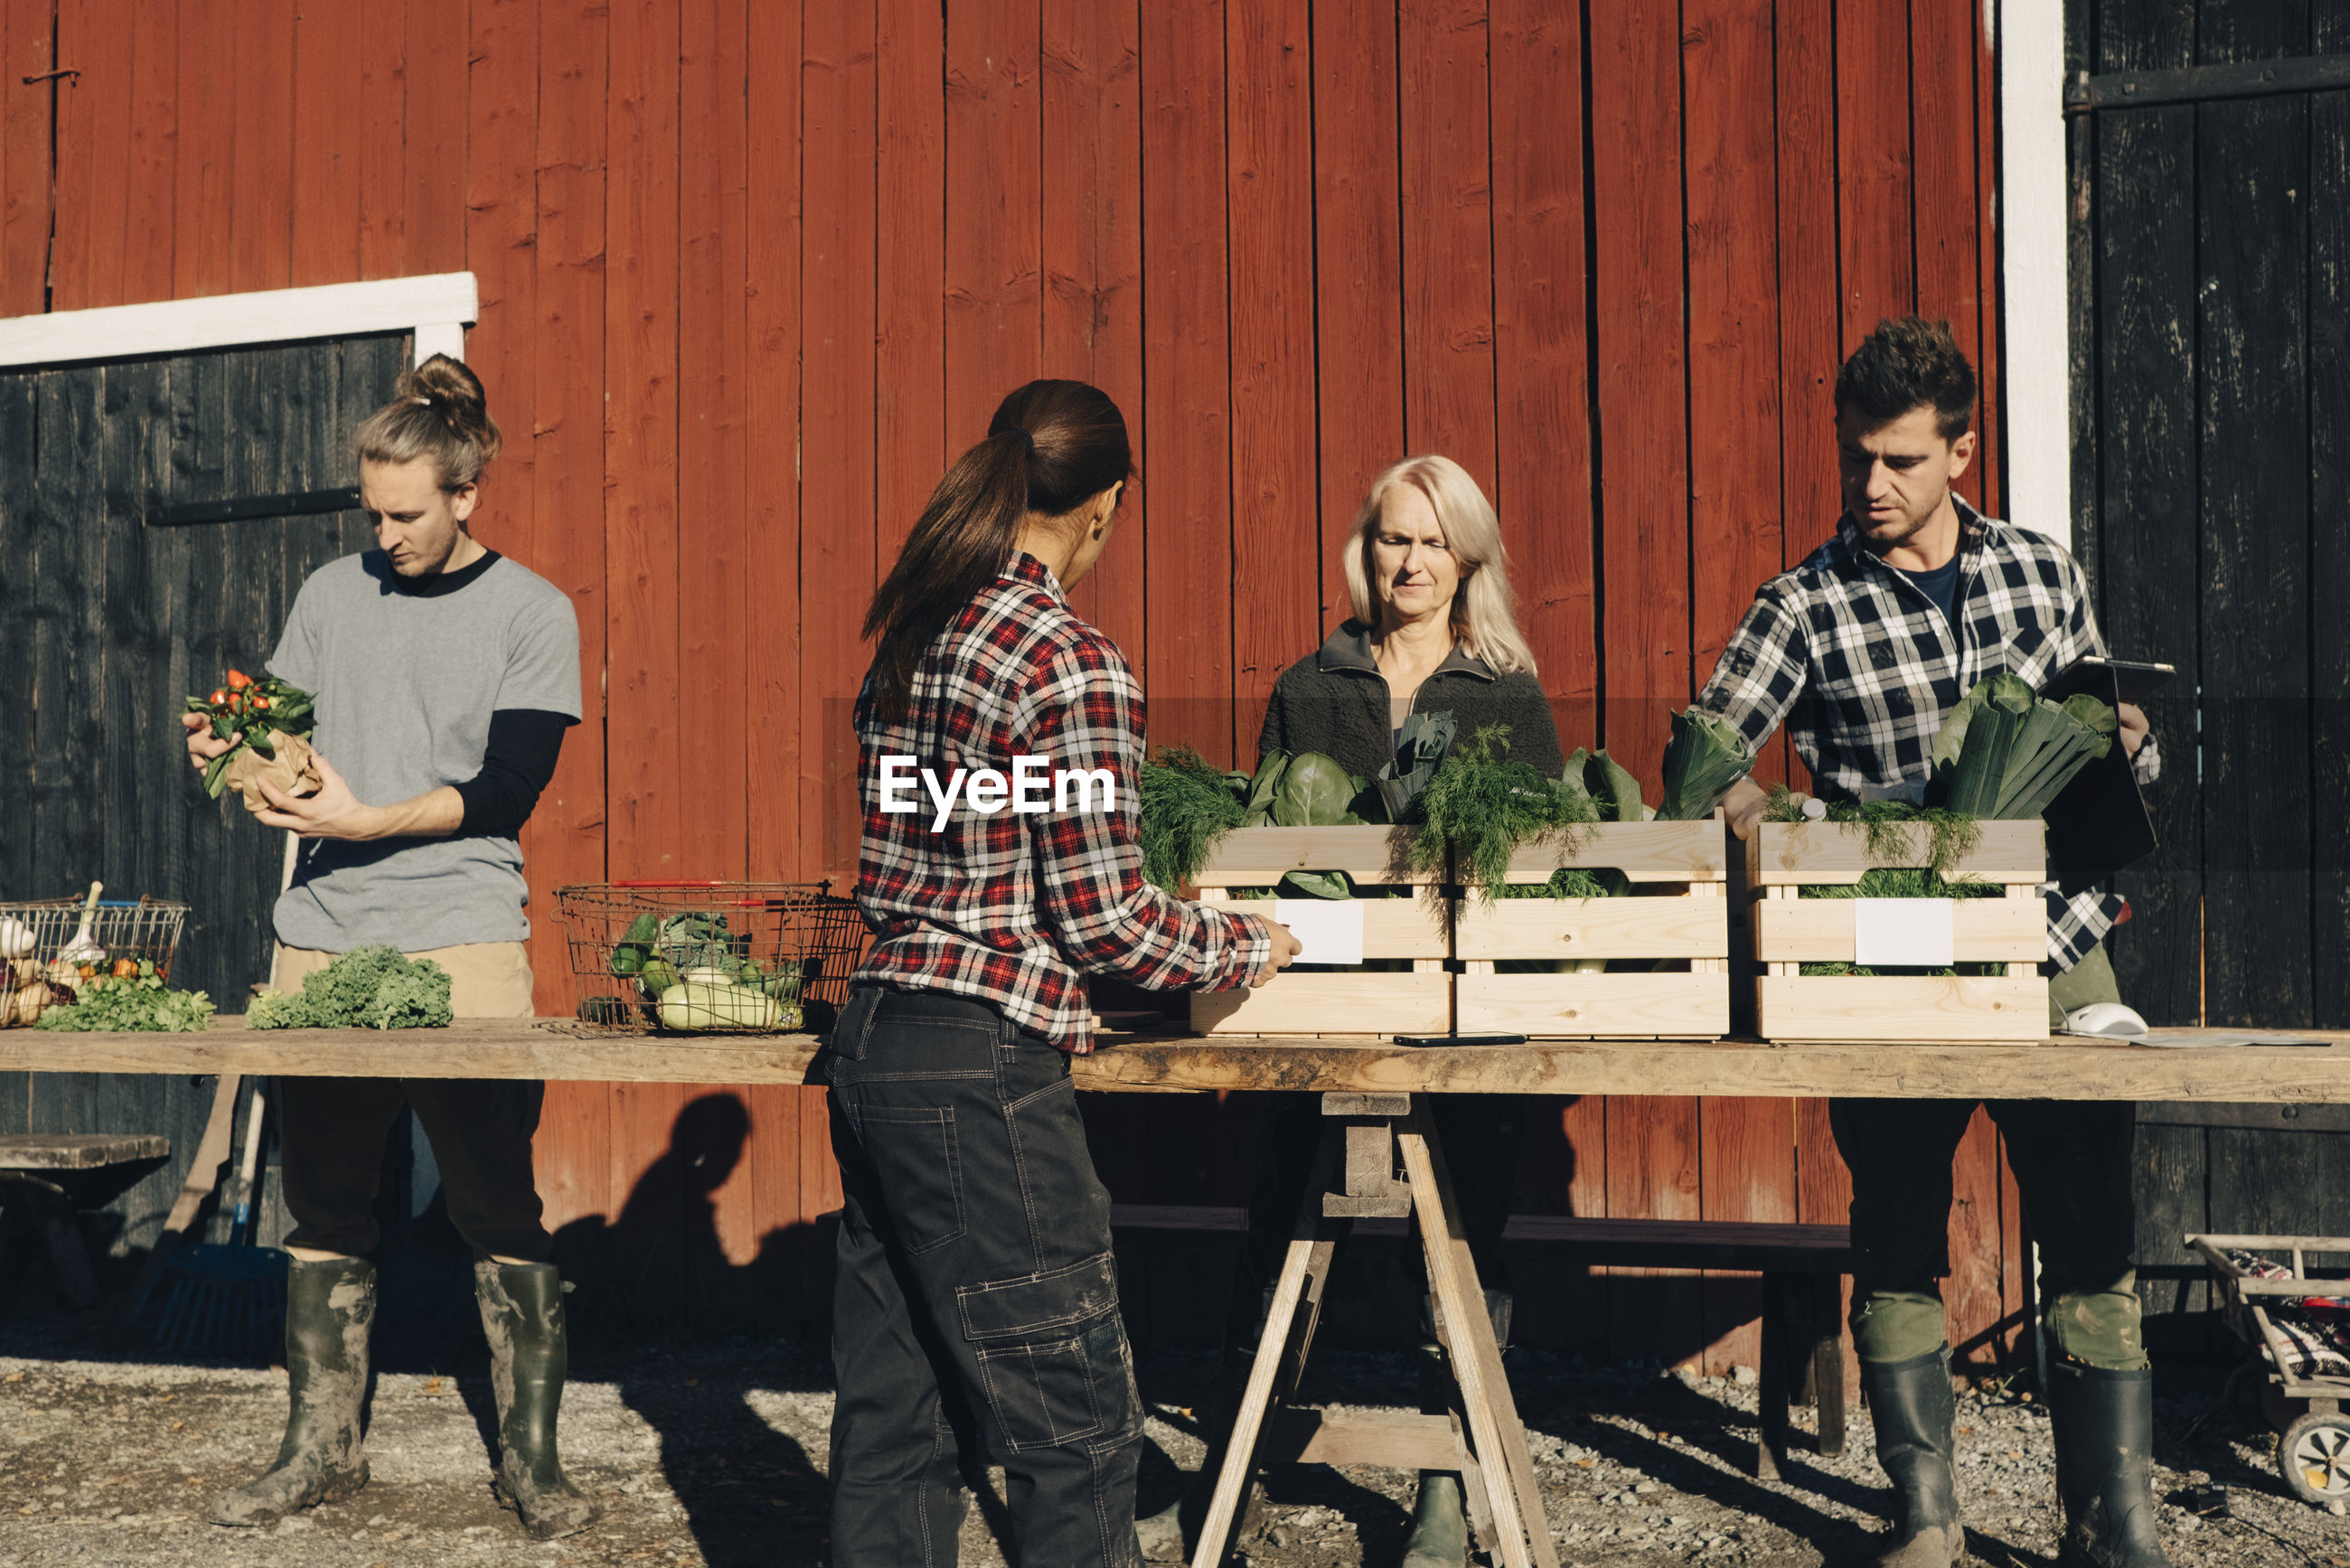 GROUP OF PEOPLE SITTING ON WOODEN TABLE AGAINST WALL